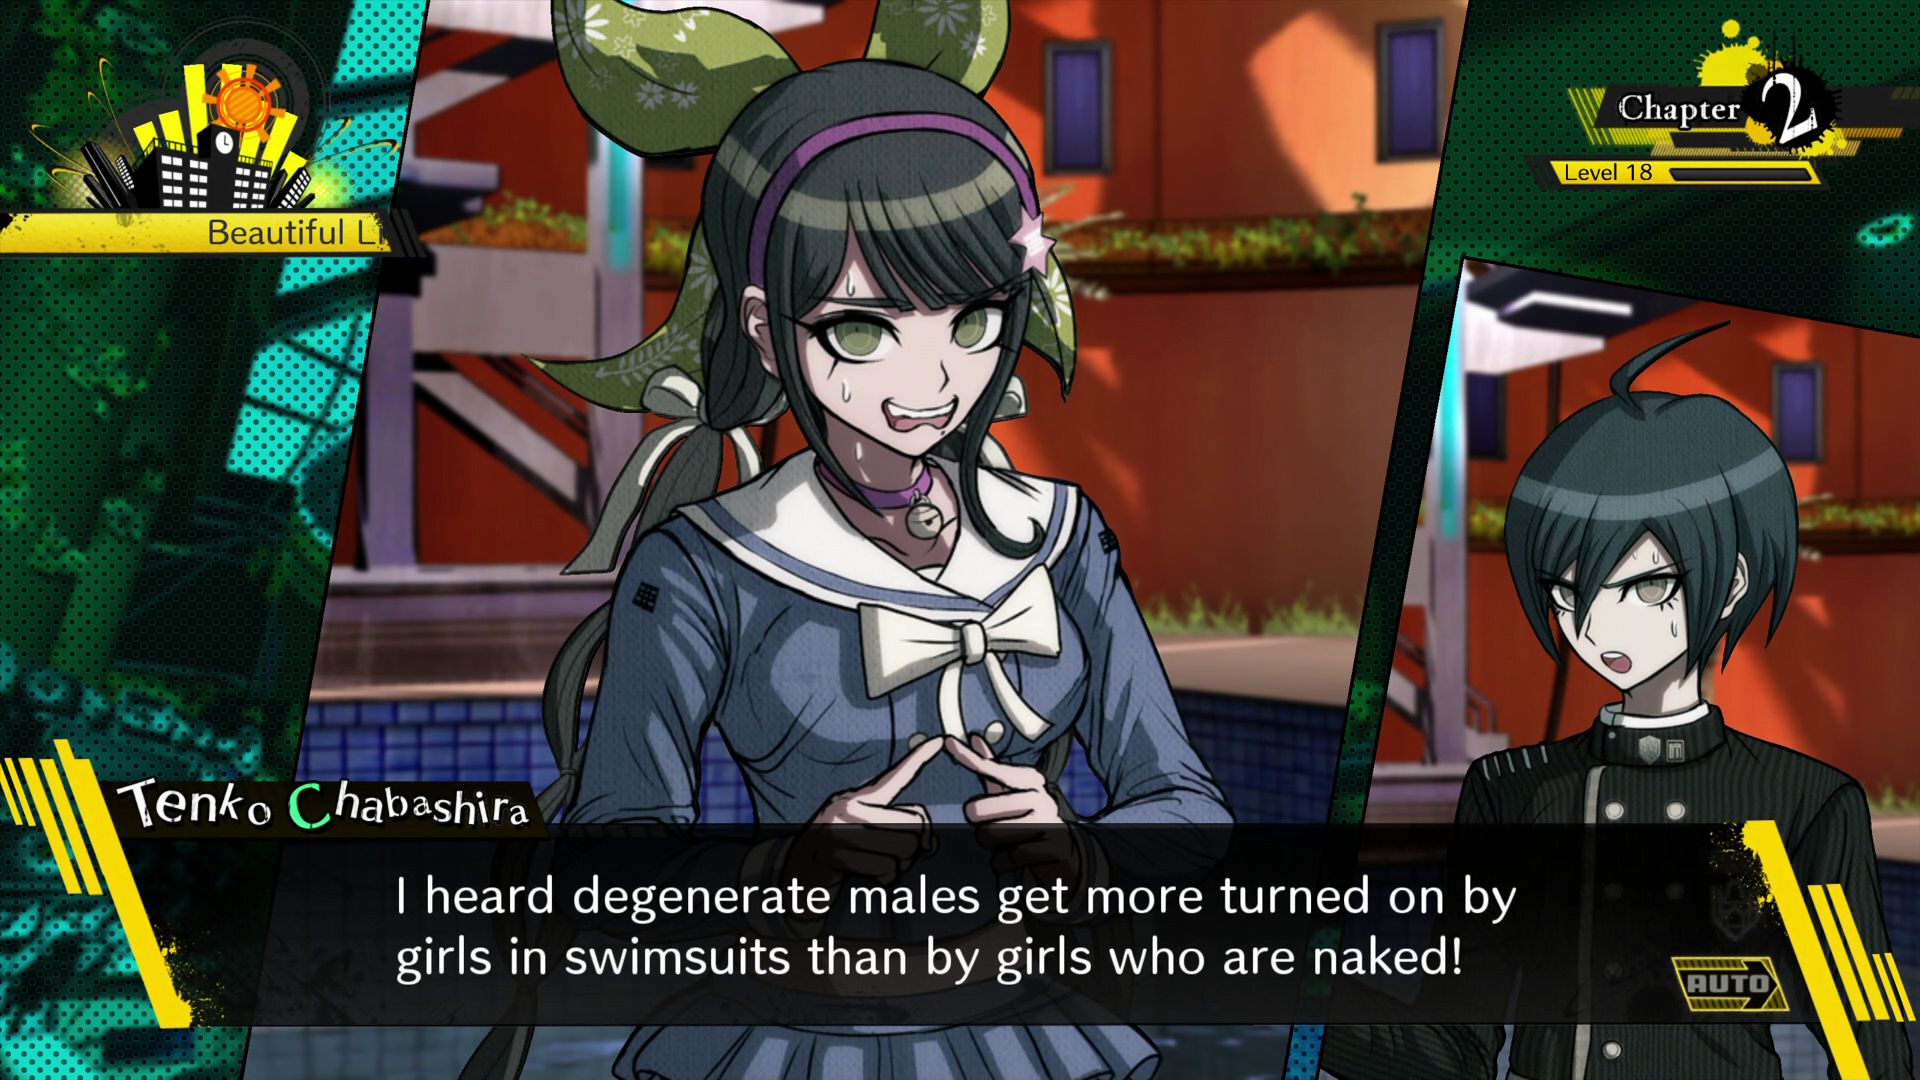 Danganronpa V3 (PS4, PS Vita) Review 4